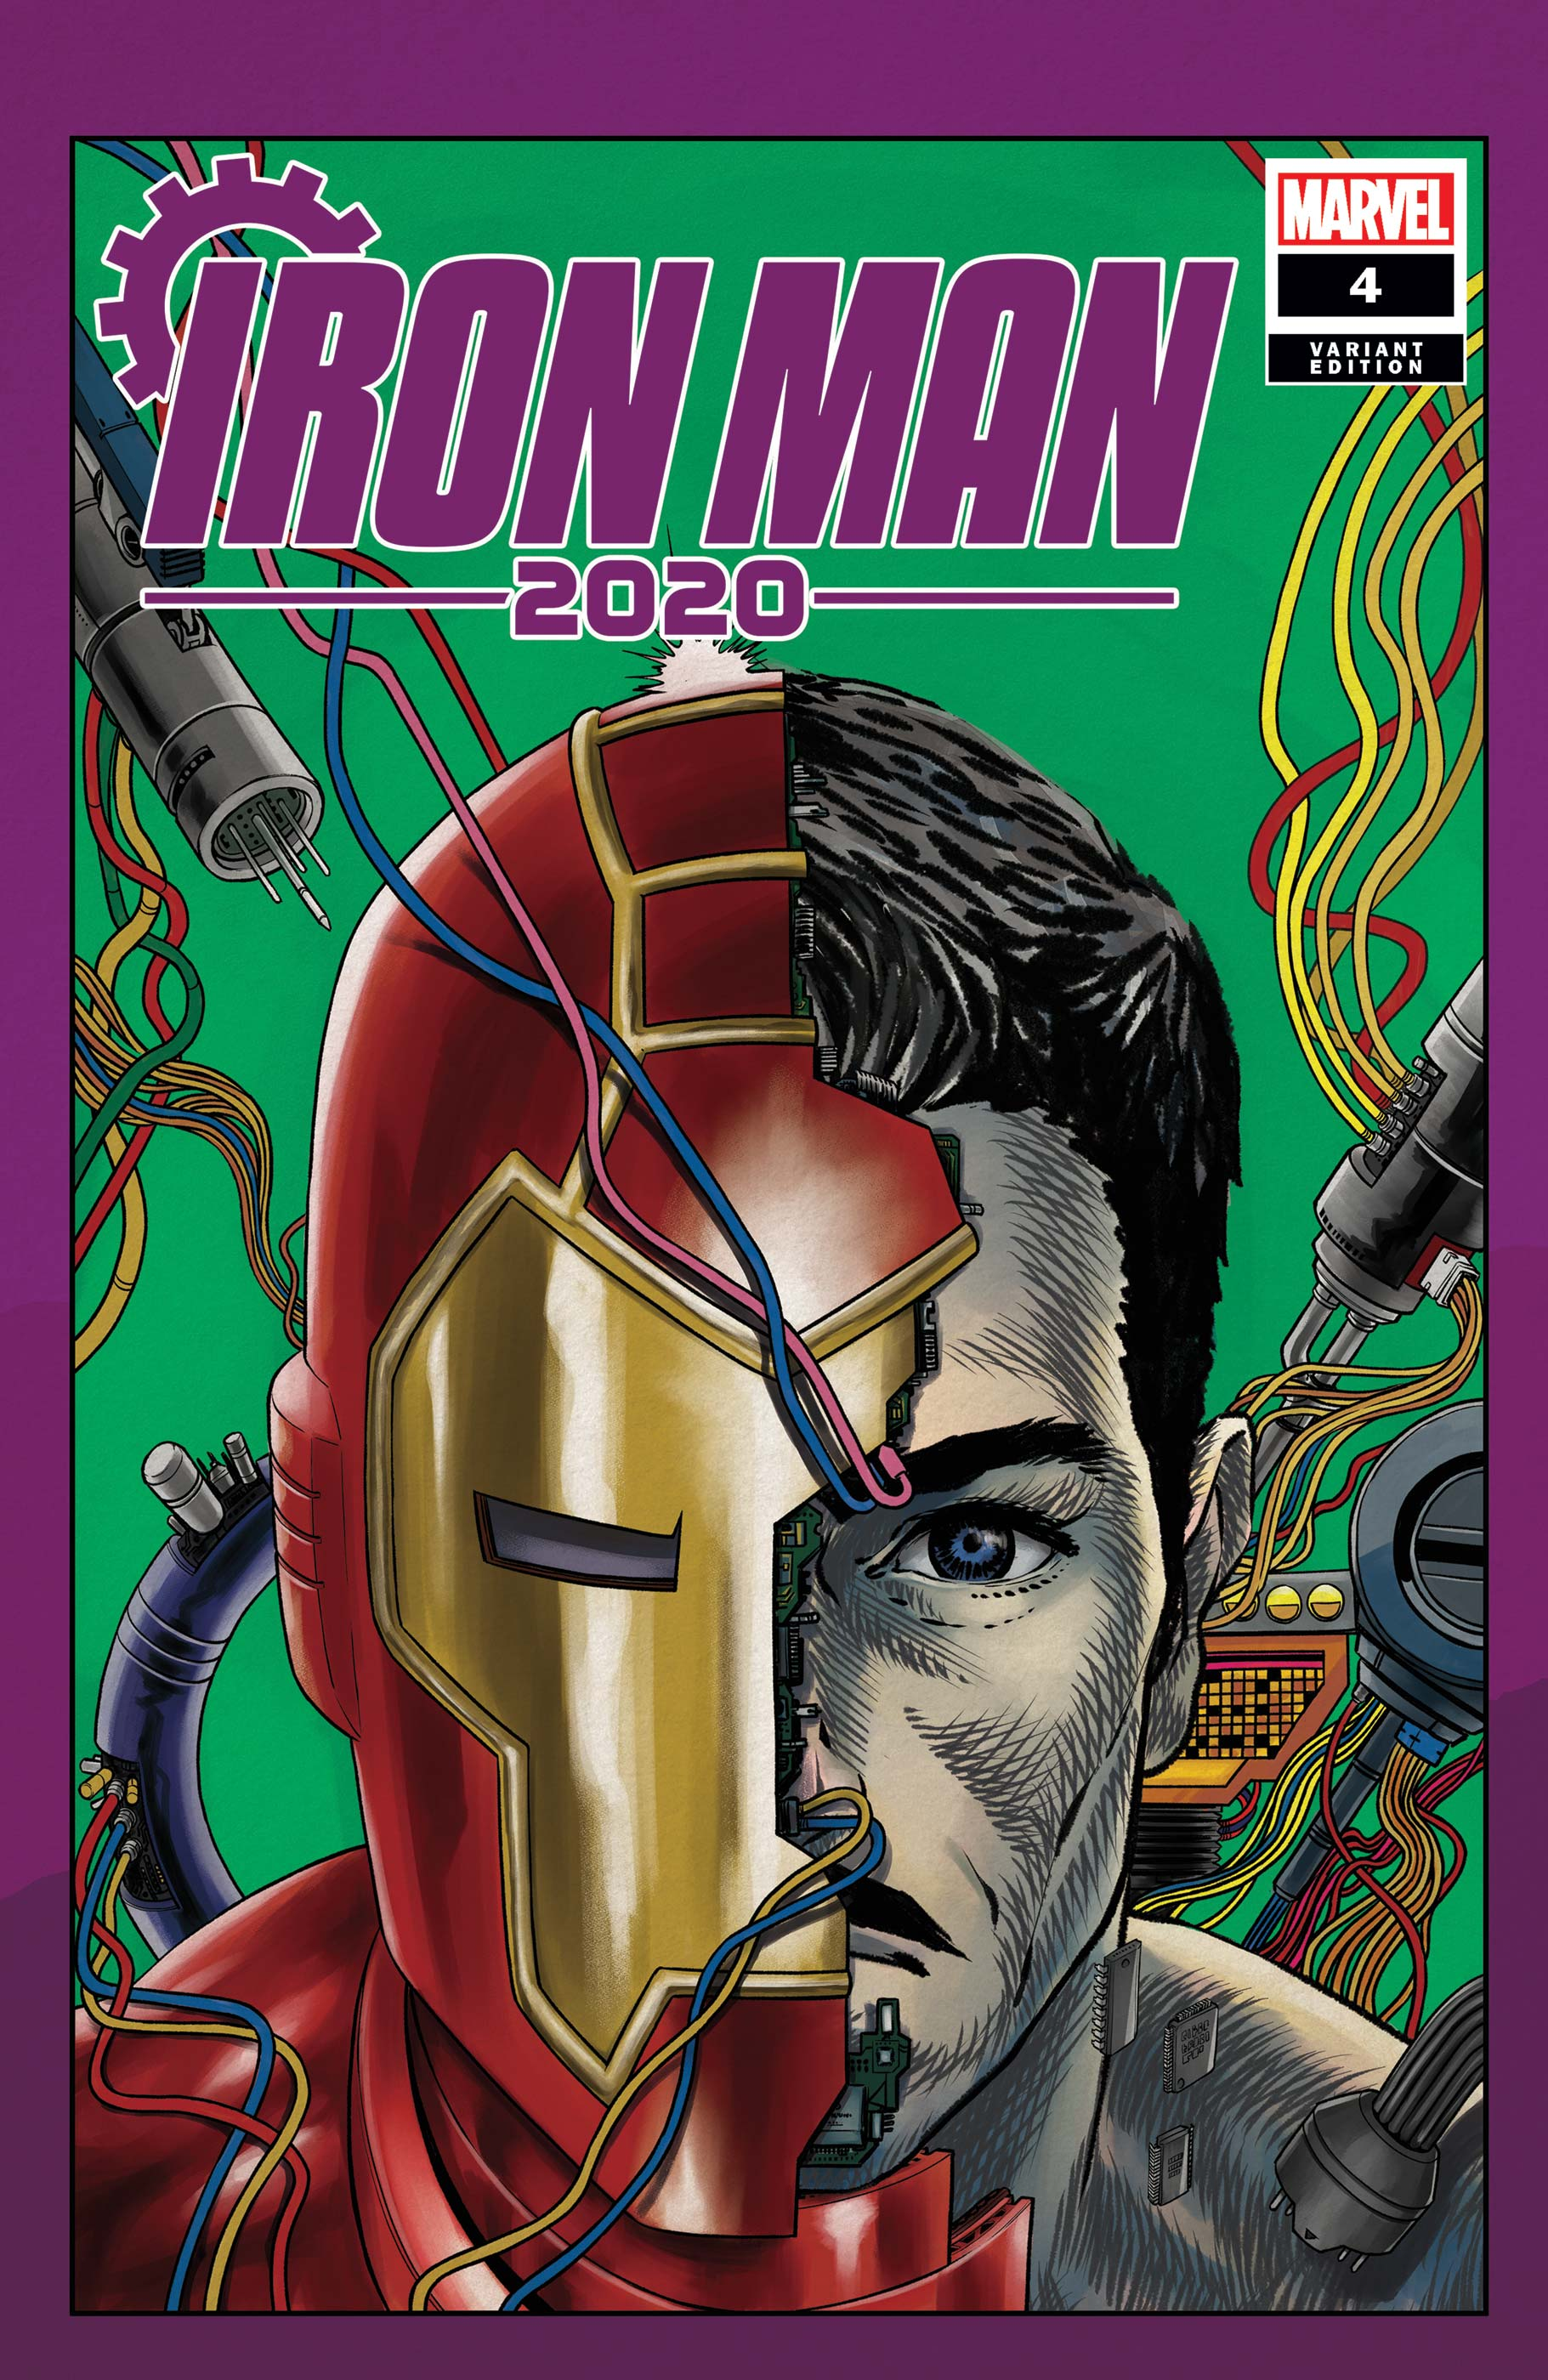 Iron Man 2020 (2020) #4 (Variant)